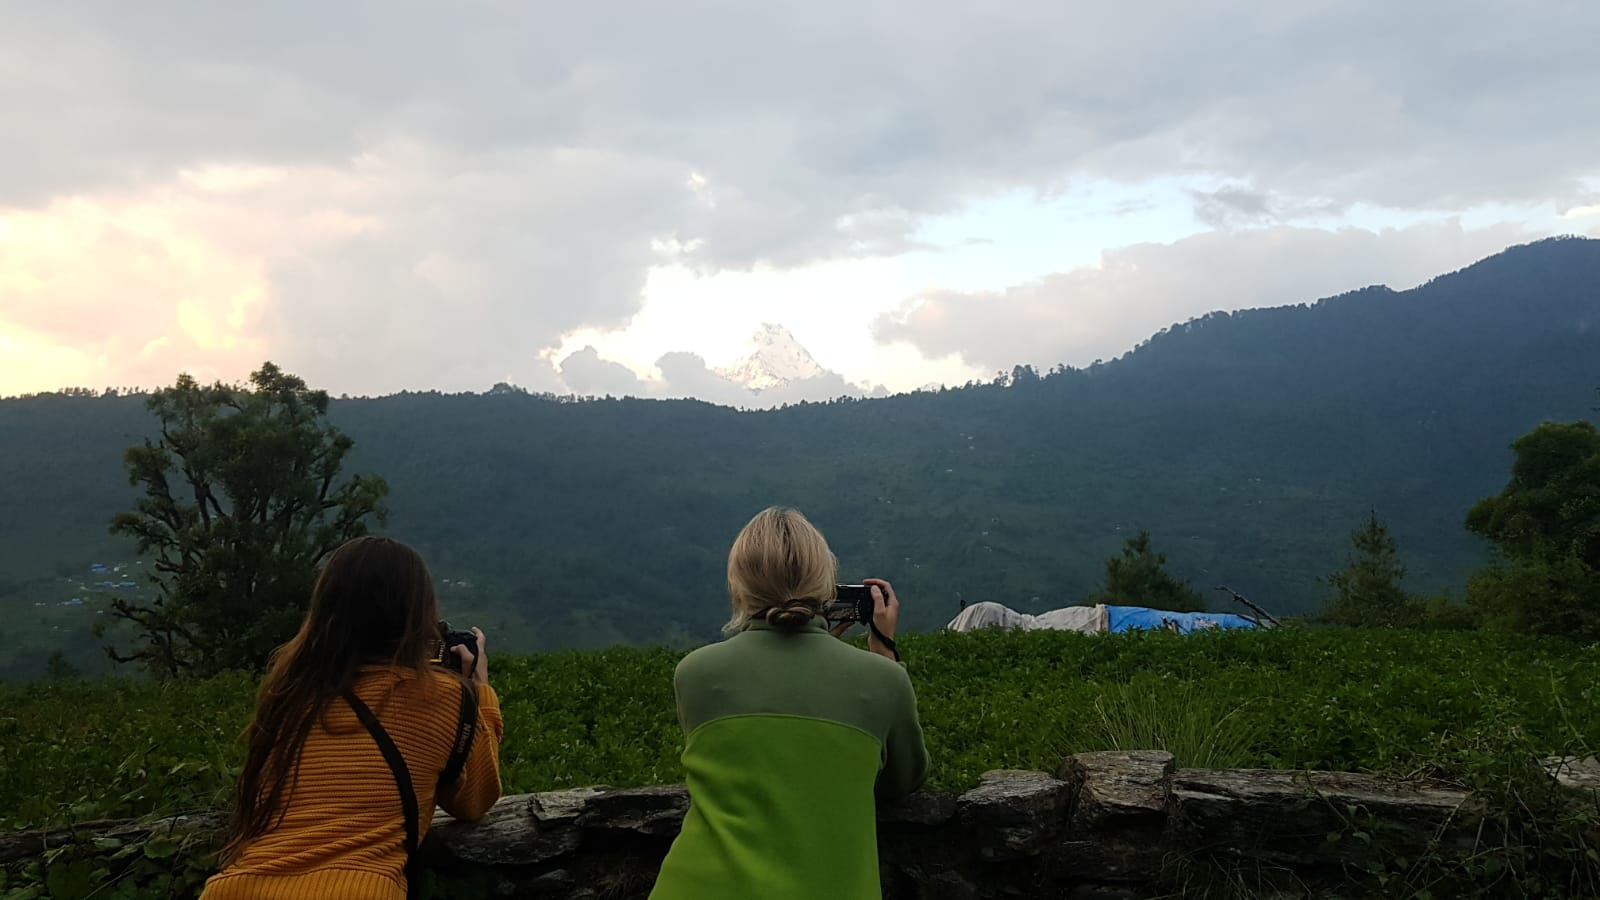 Two girls taking photos of mountains